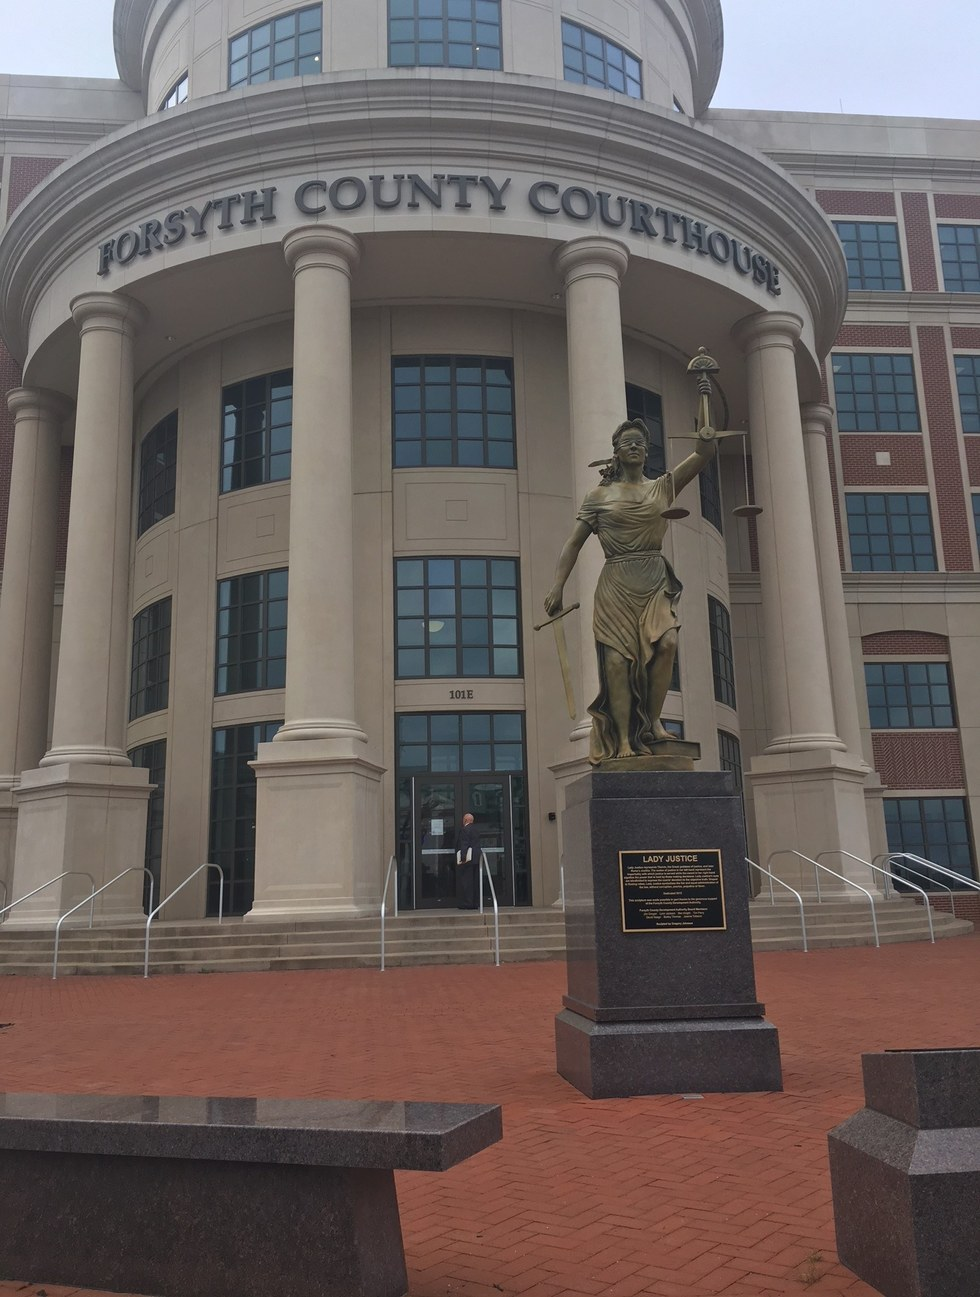 The forsyth county courthouse